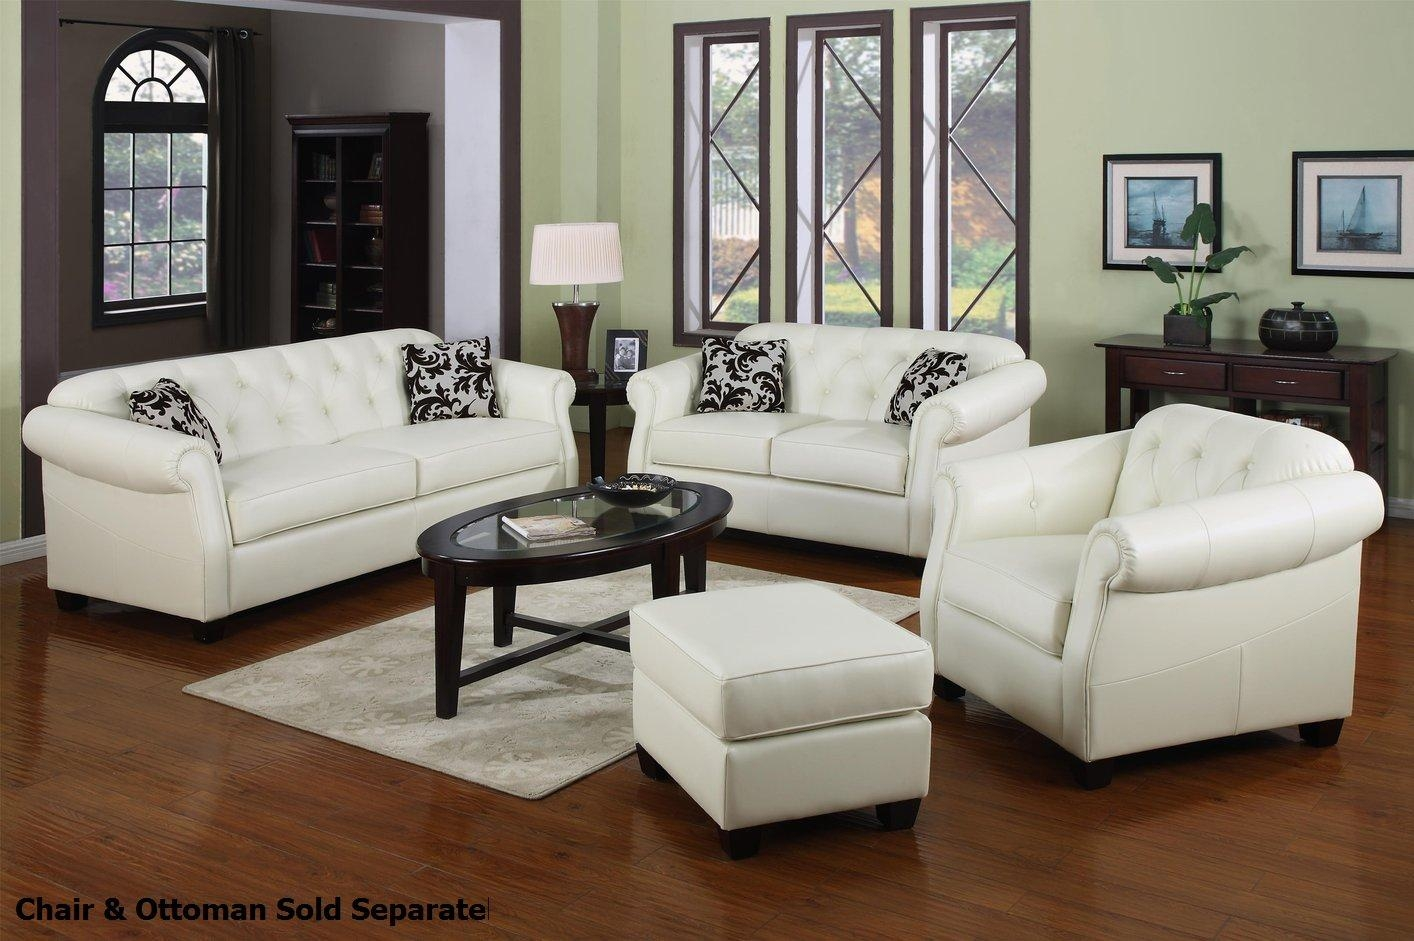 Benchcraft Leather Rustic Sofas Also White Leather Recliner Sofa With Benchcraft Leather Sofas (View 20 of 20)